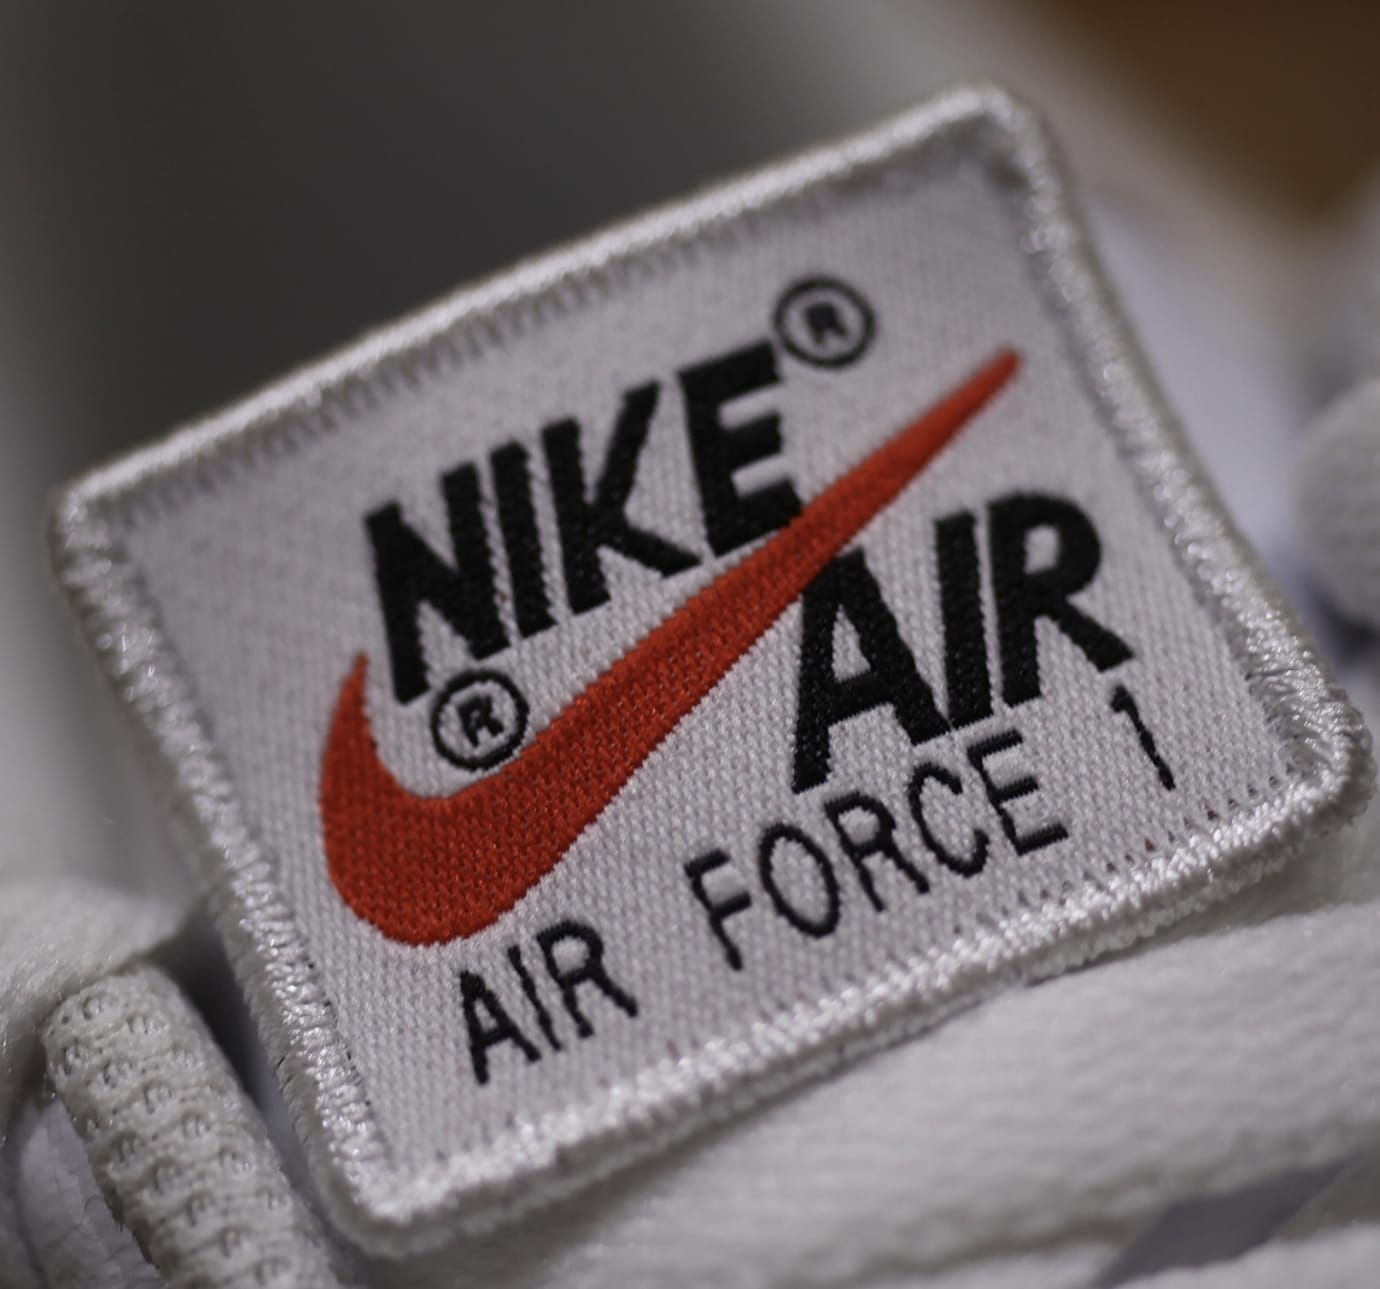 Nike Air Force 1 'All Star/White' (Tag)